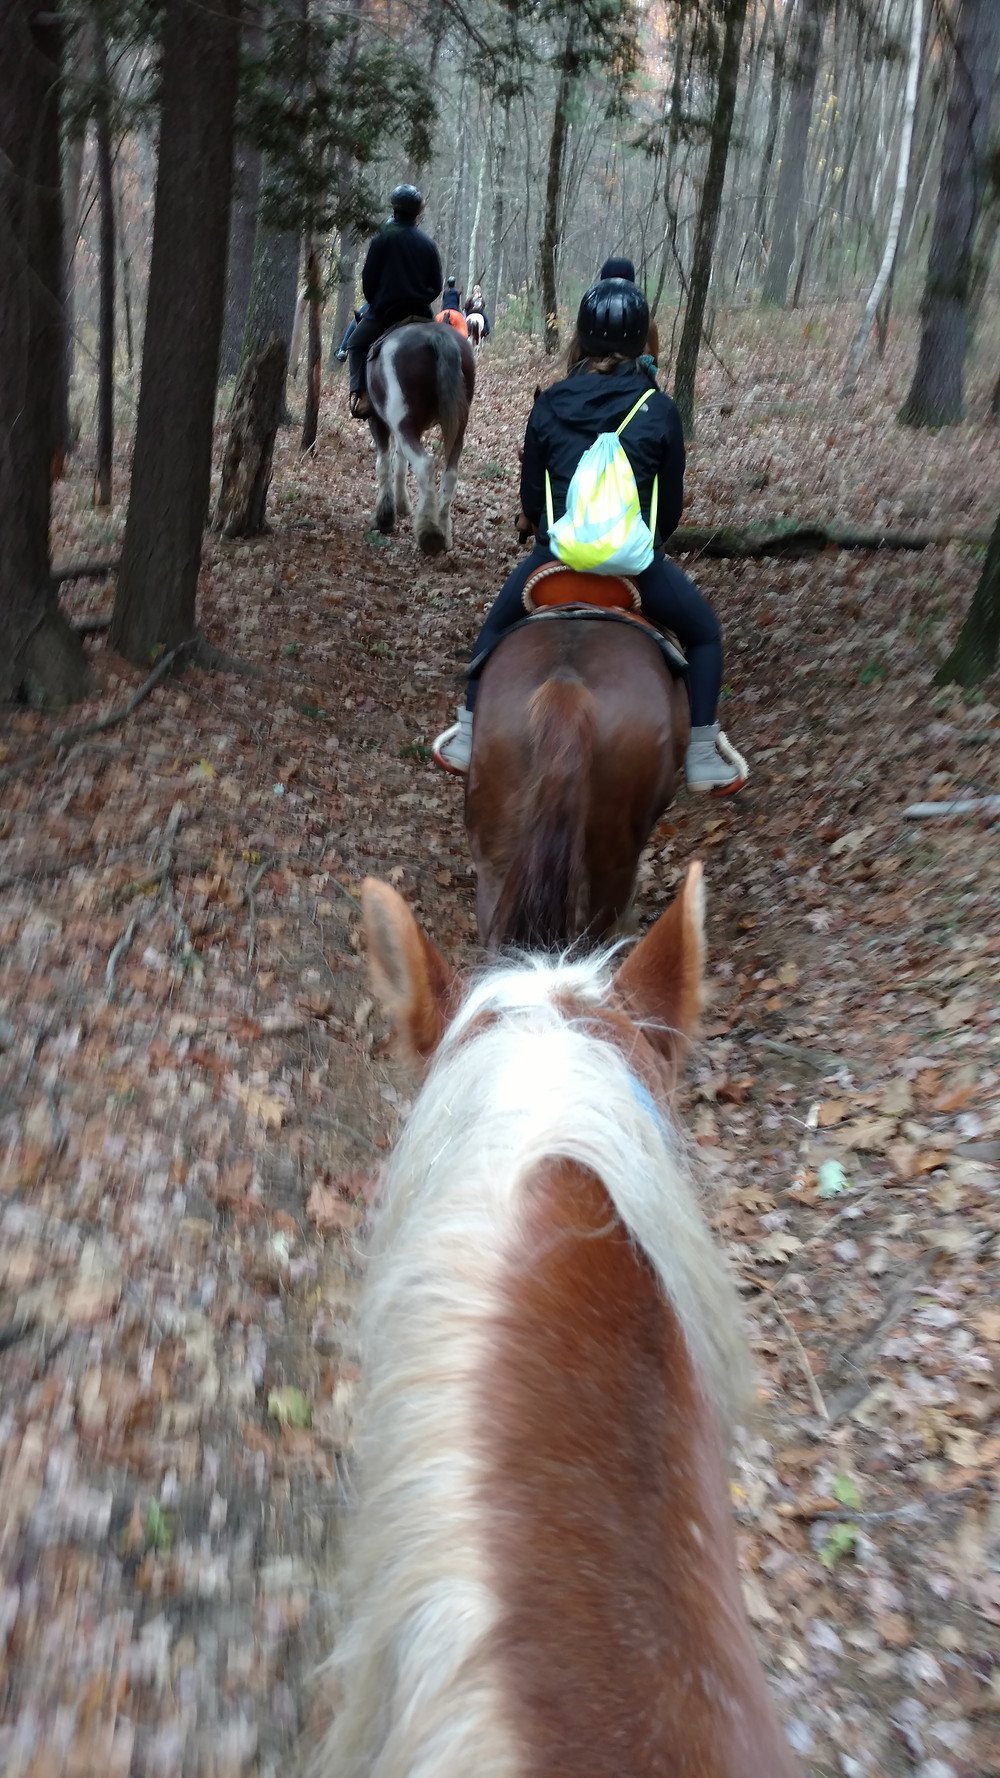 people riding horses in the woods